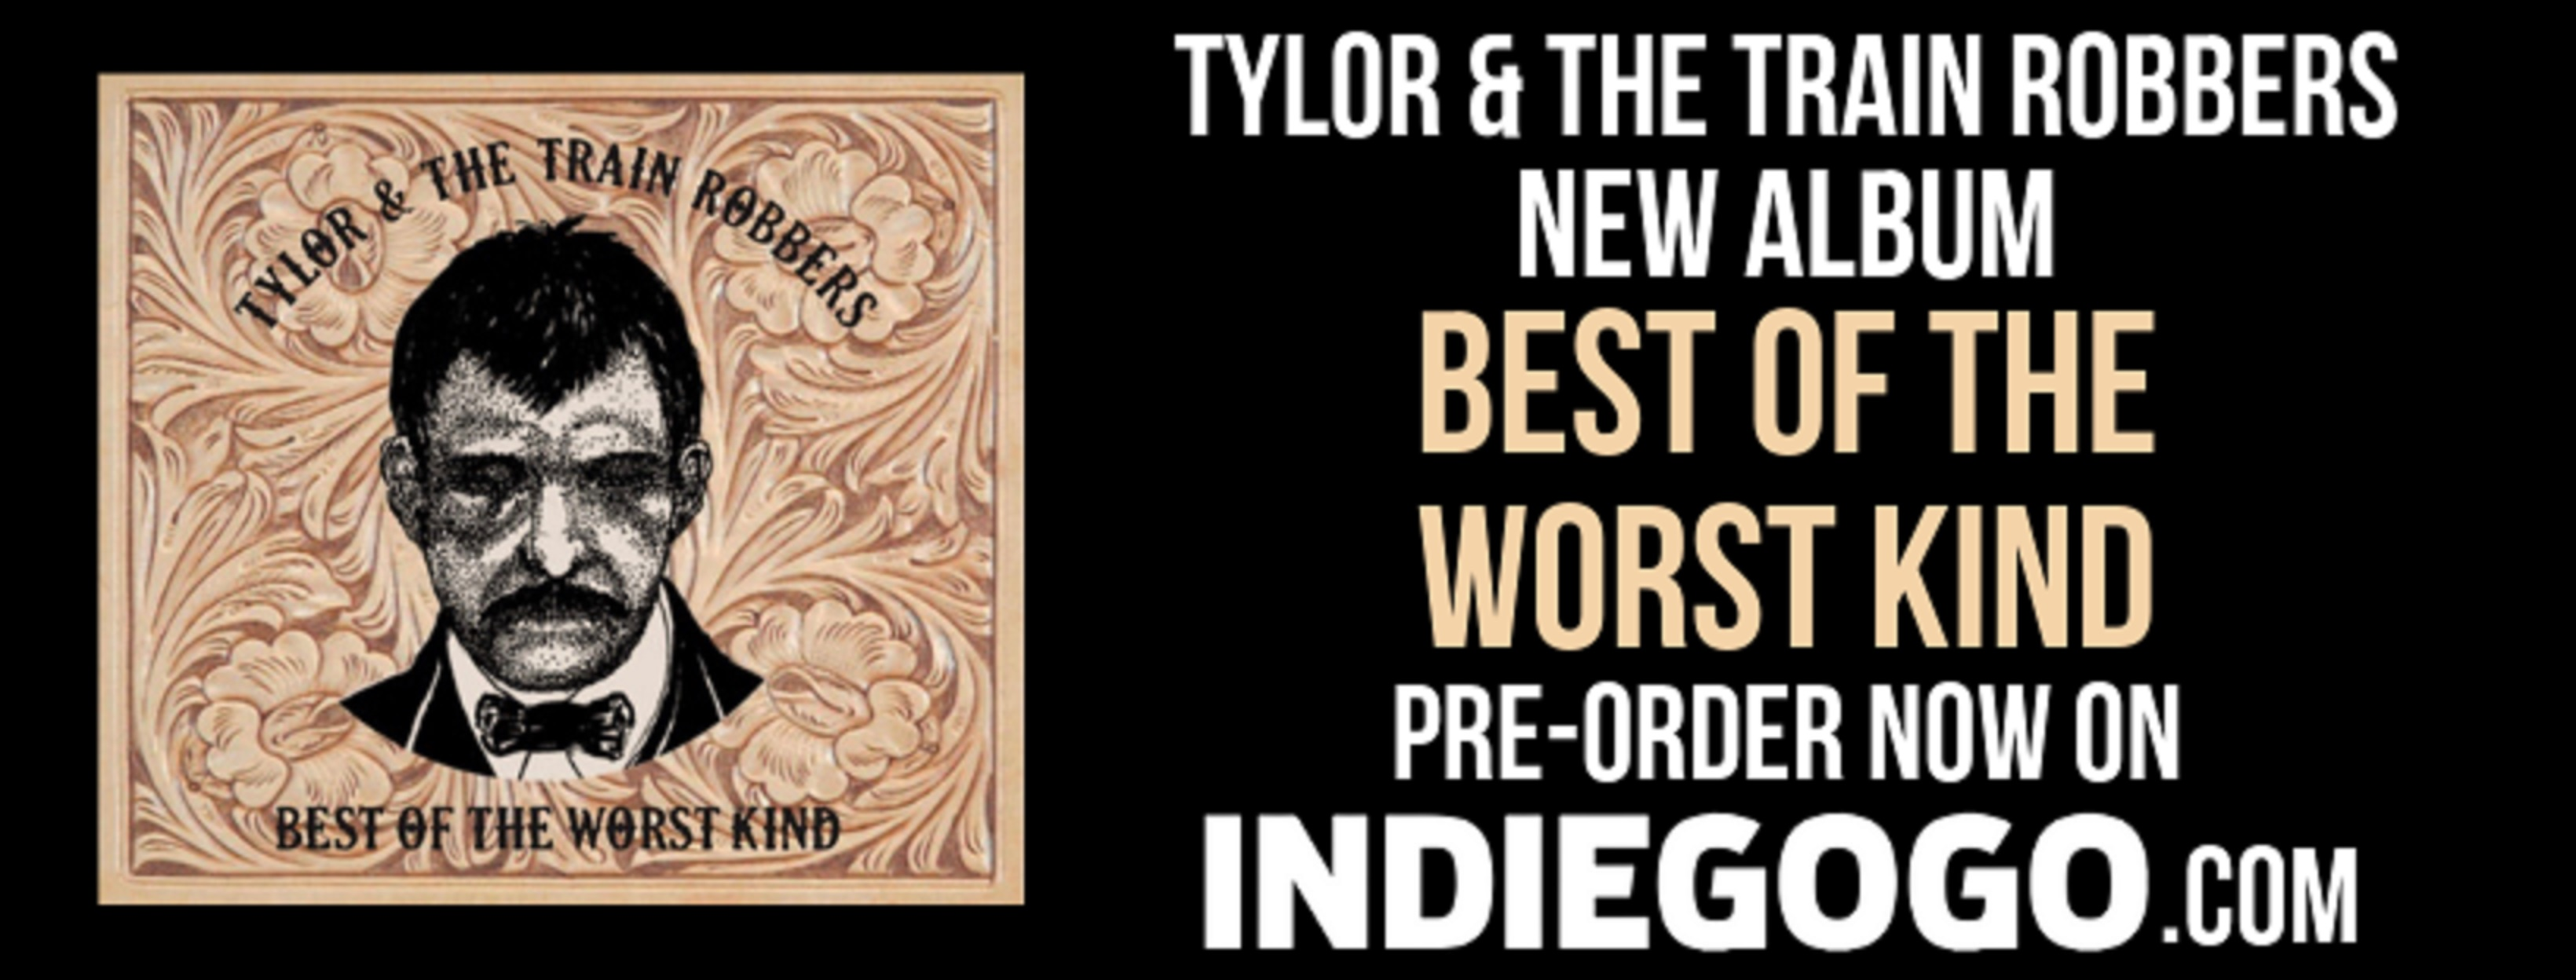 Tylor & The Train Robbers to Release 'Best of the Worst Kind'